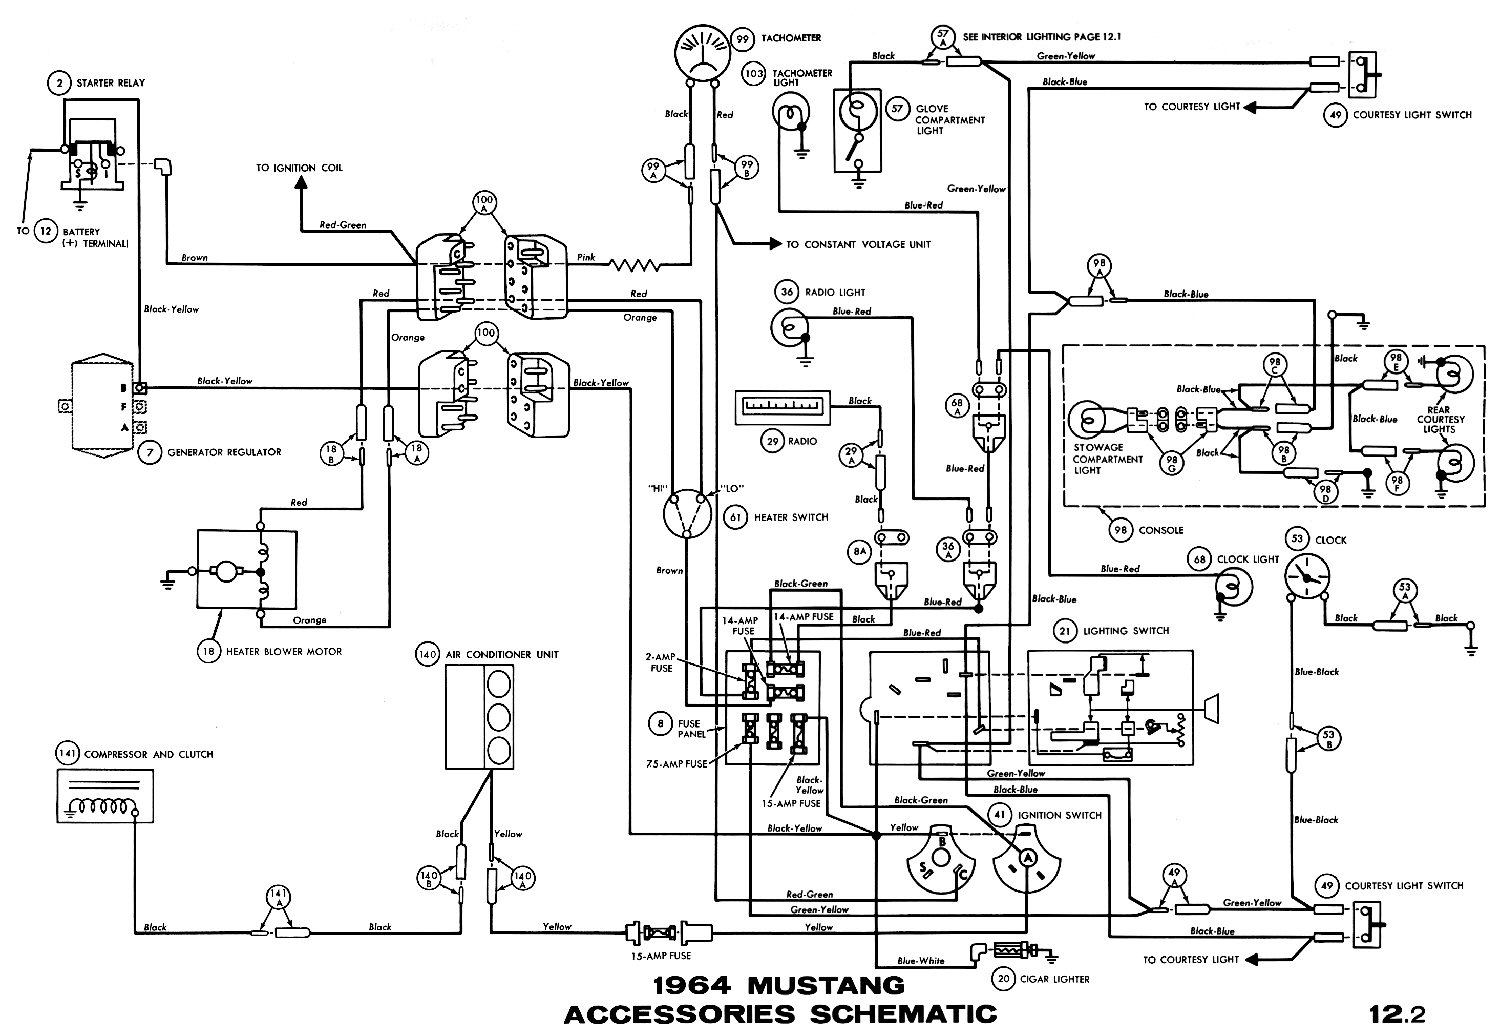 1982 mustang 2 ignition wiring diagram - 2007 ford fusion fuse box location  - source-auto5.yenpancane.jeanjaures37.fr  wiring diagram resource